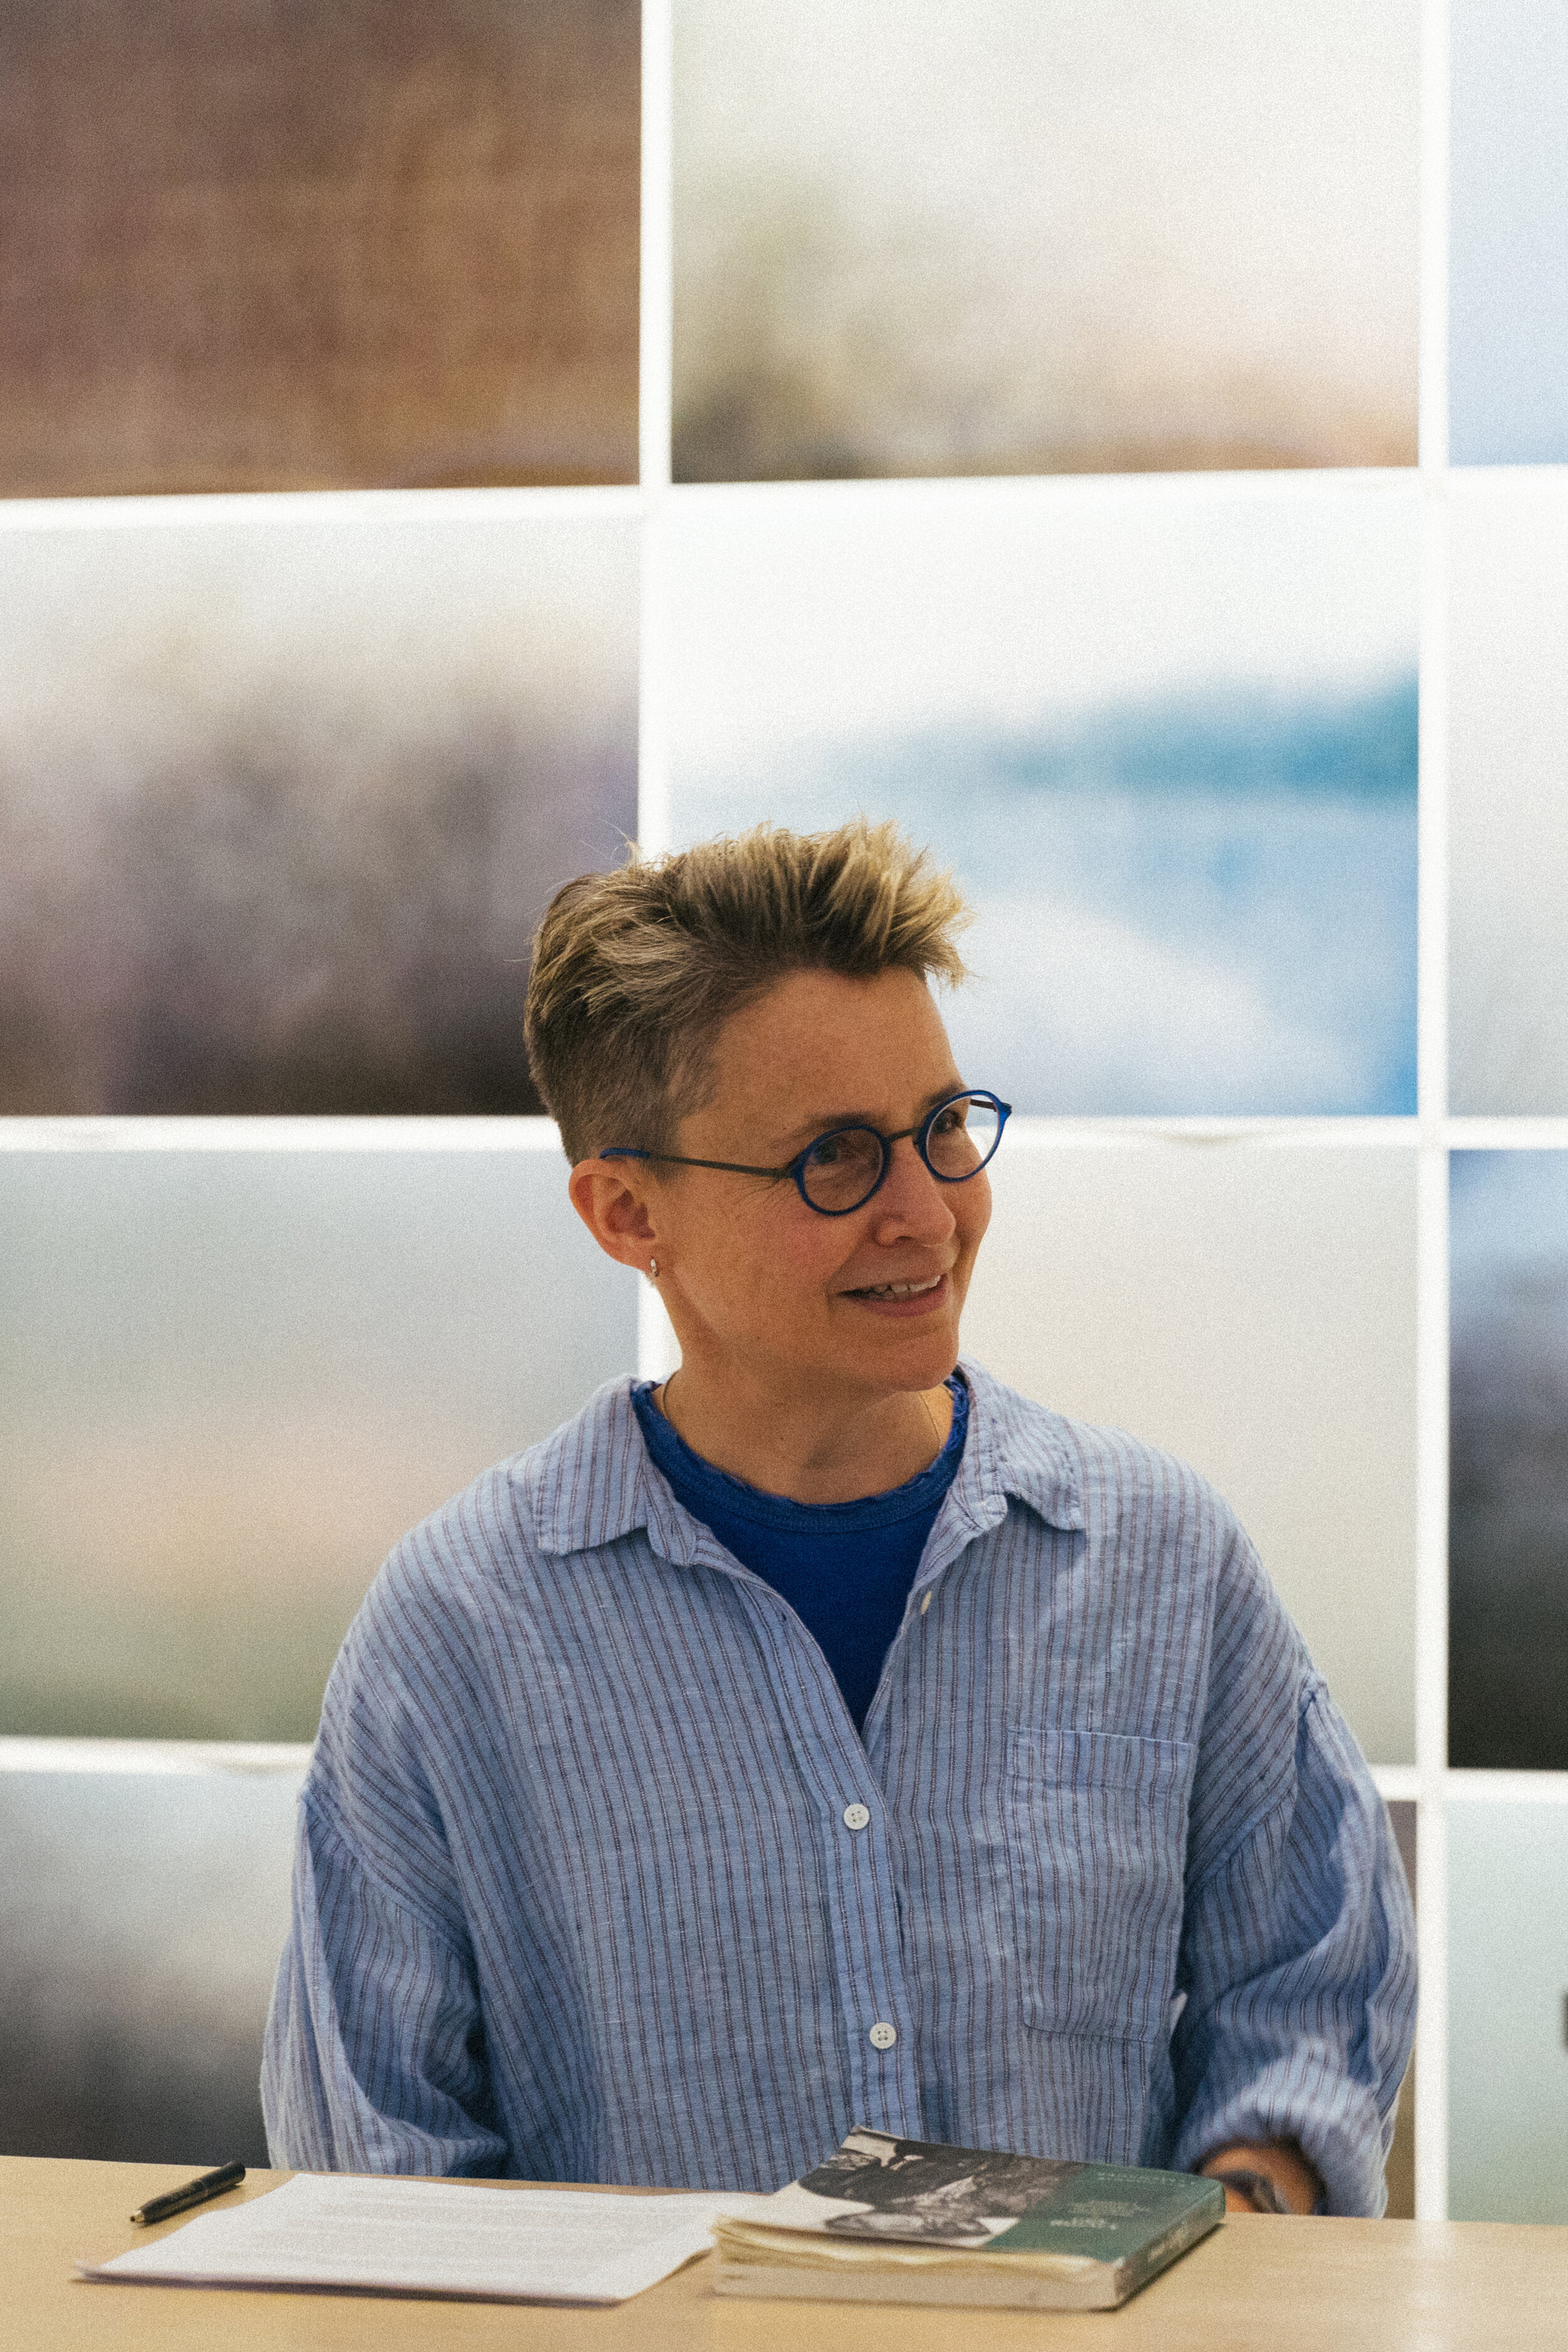 Stephanie LeMenager in conversation with artist, curator, and writer Caitlin Chaisson at Access Gallery, Vancouver, B.C.